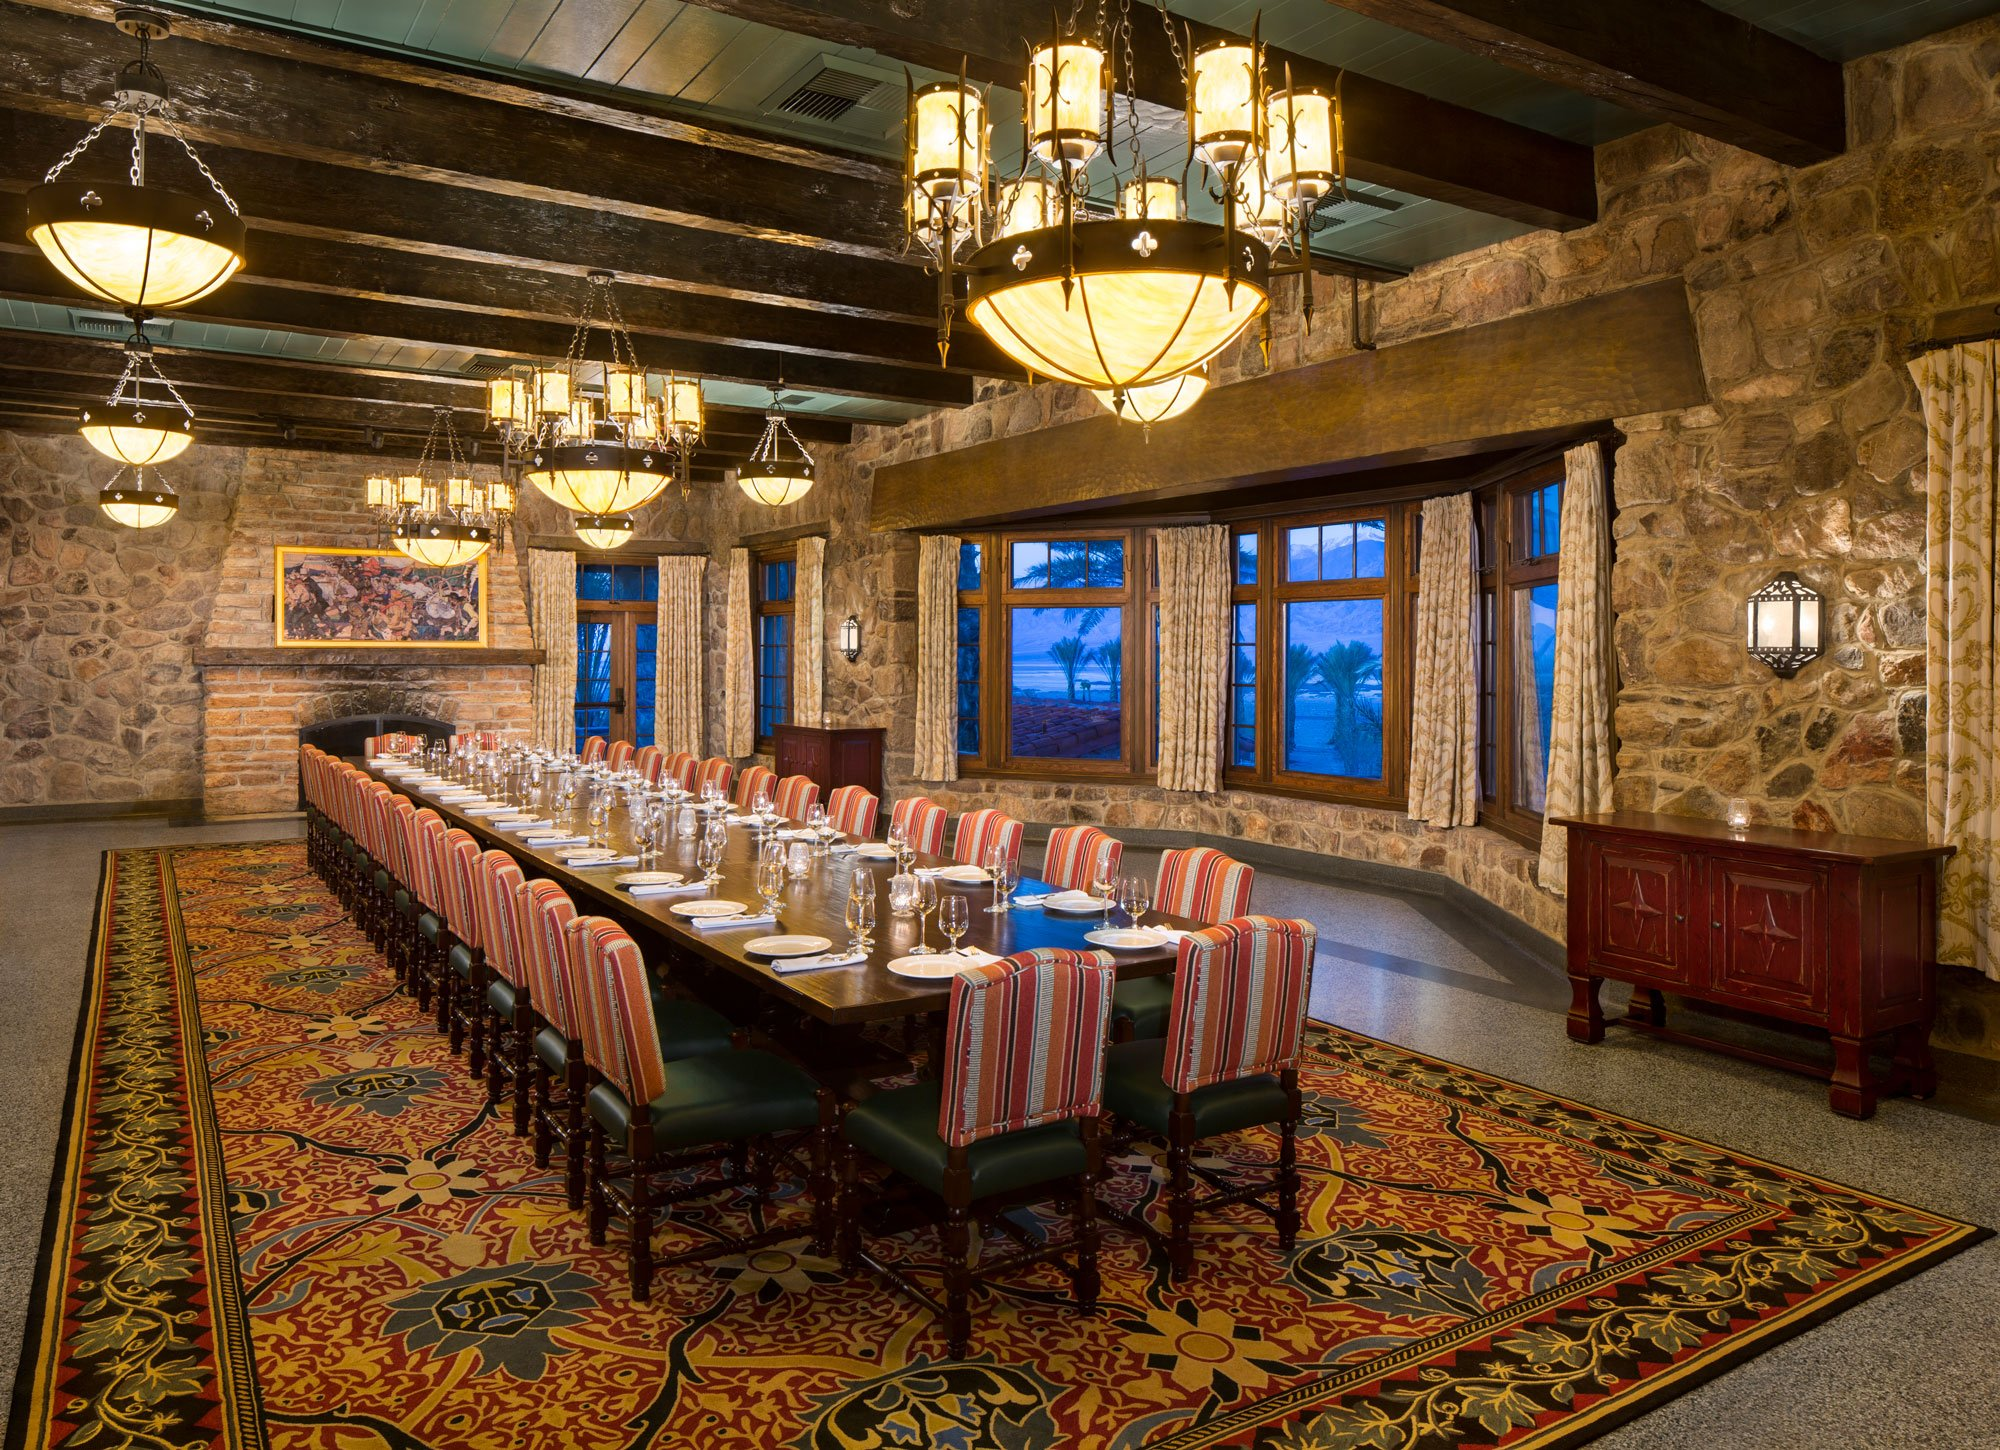 A meeting room in a high-end resort.